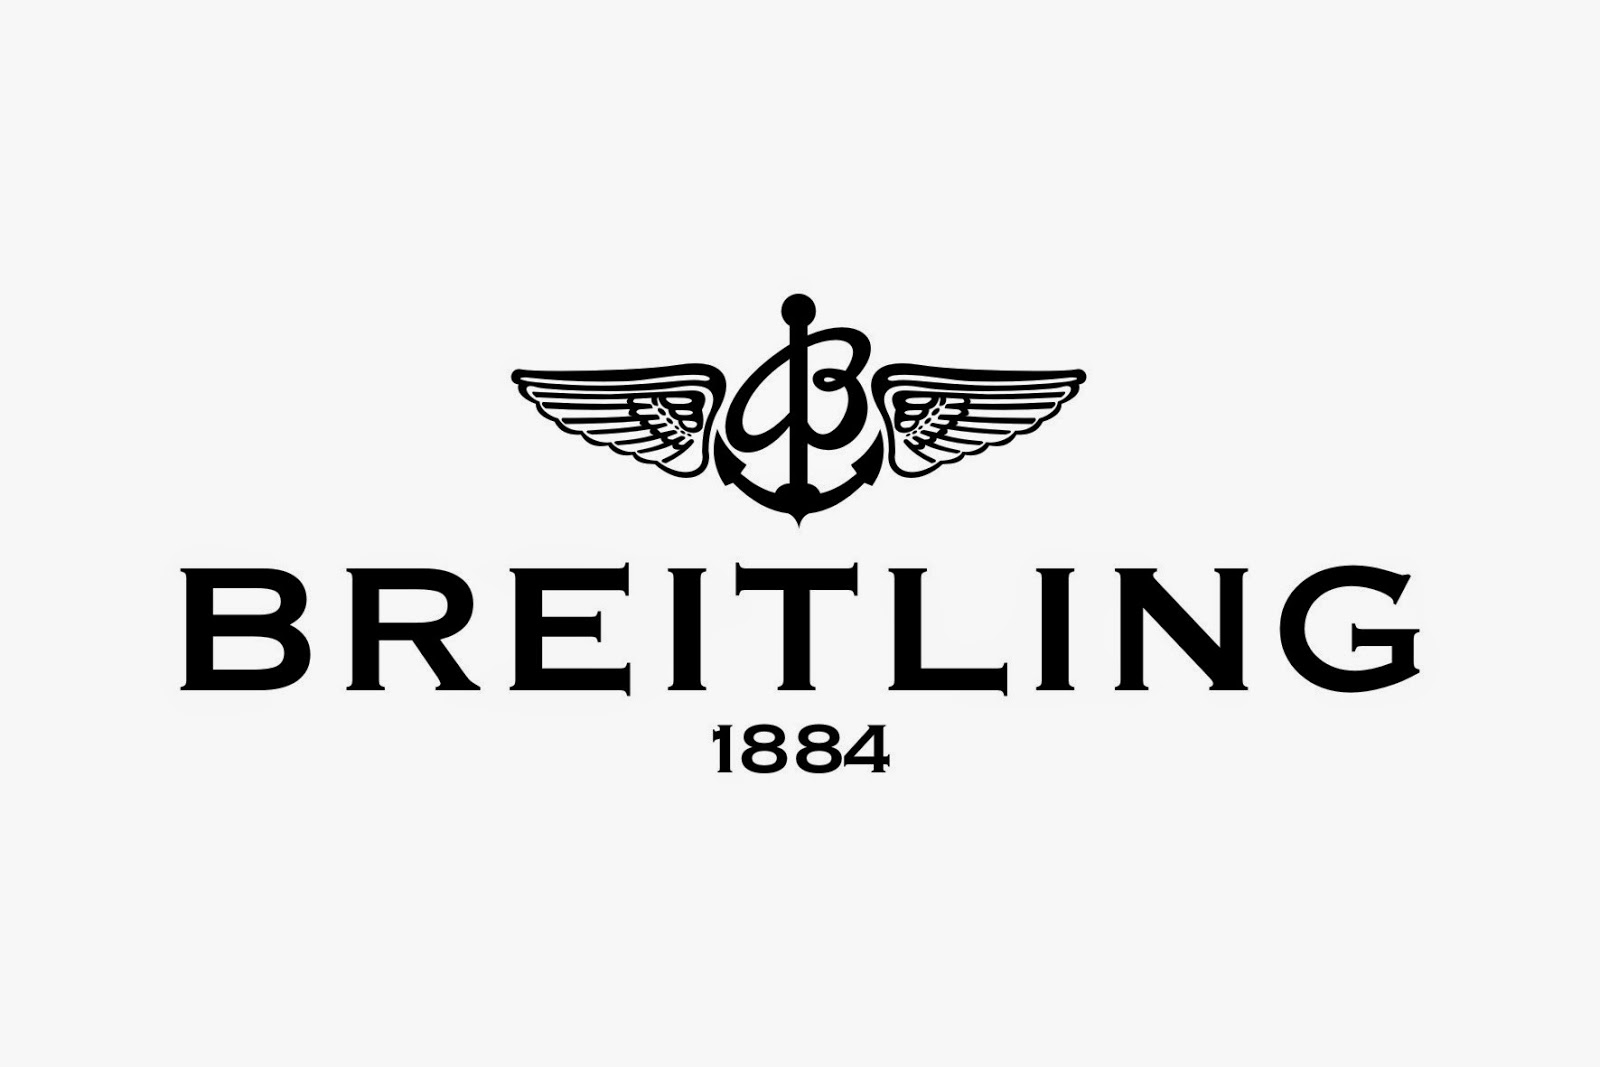 mens luxury watches breitling logo